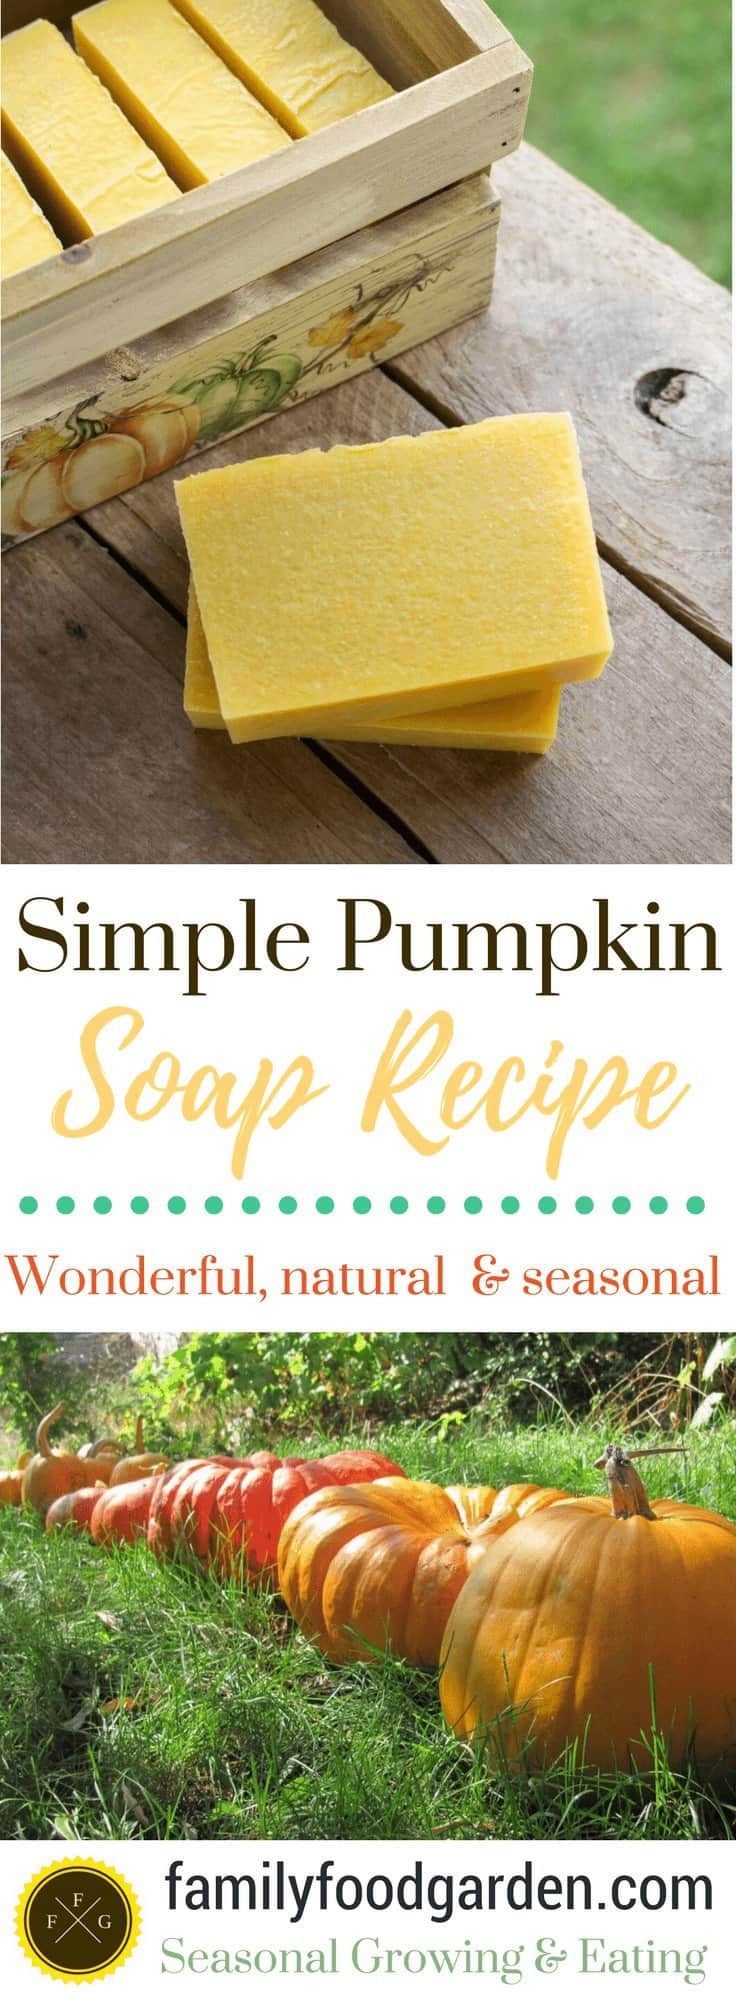 Simple Pumpkin Soap Recipe